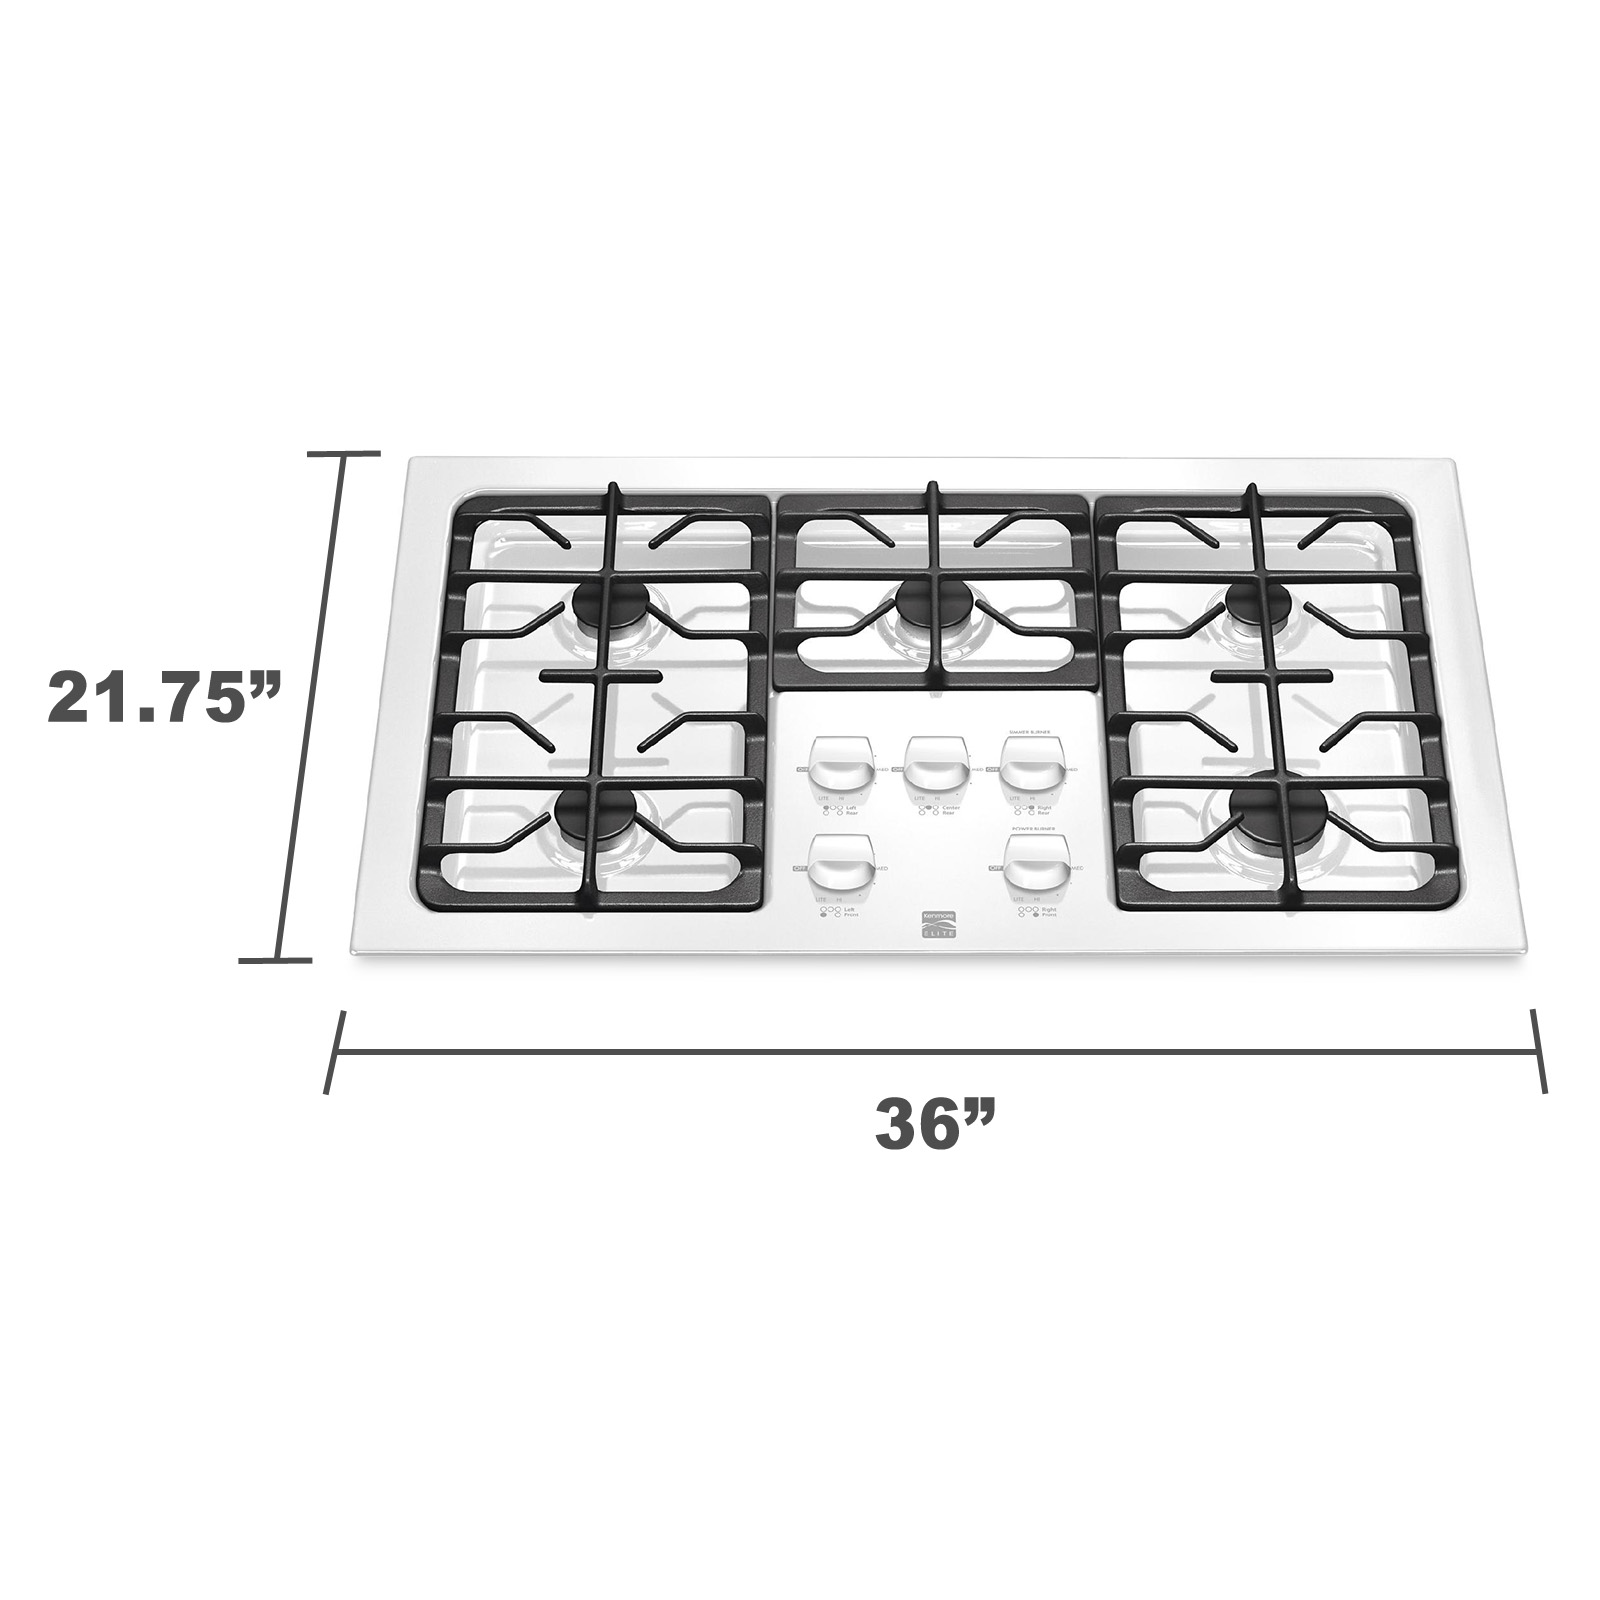 "Kenmore 36"" Sealed Gas Cooktop 3243"